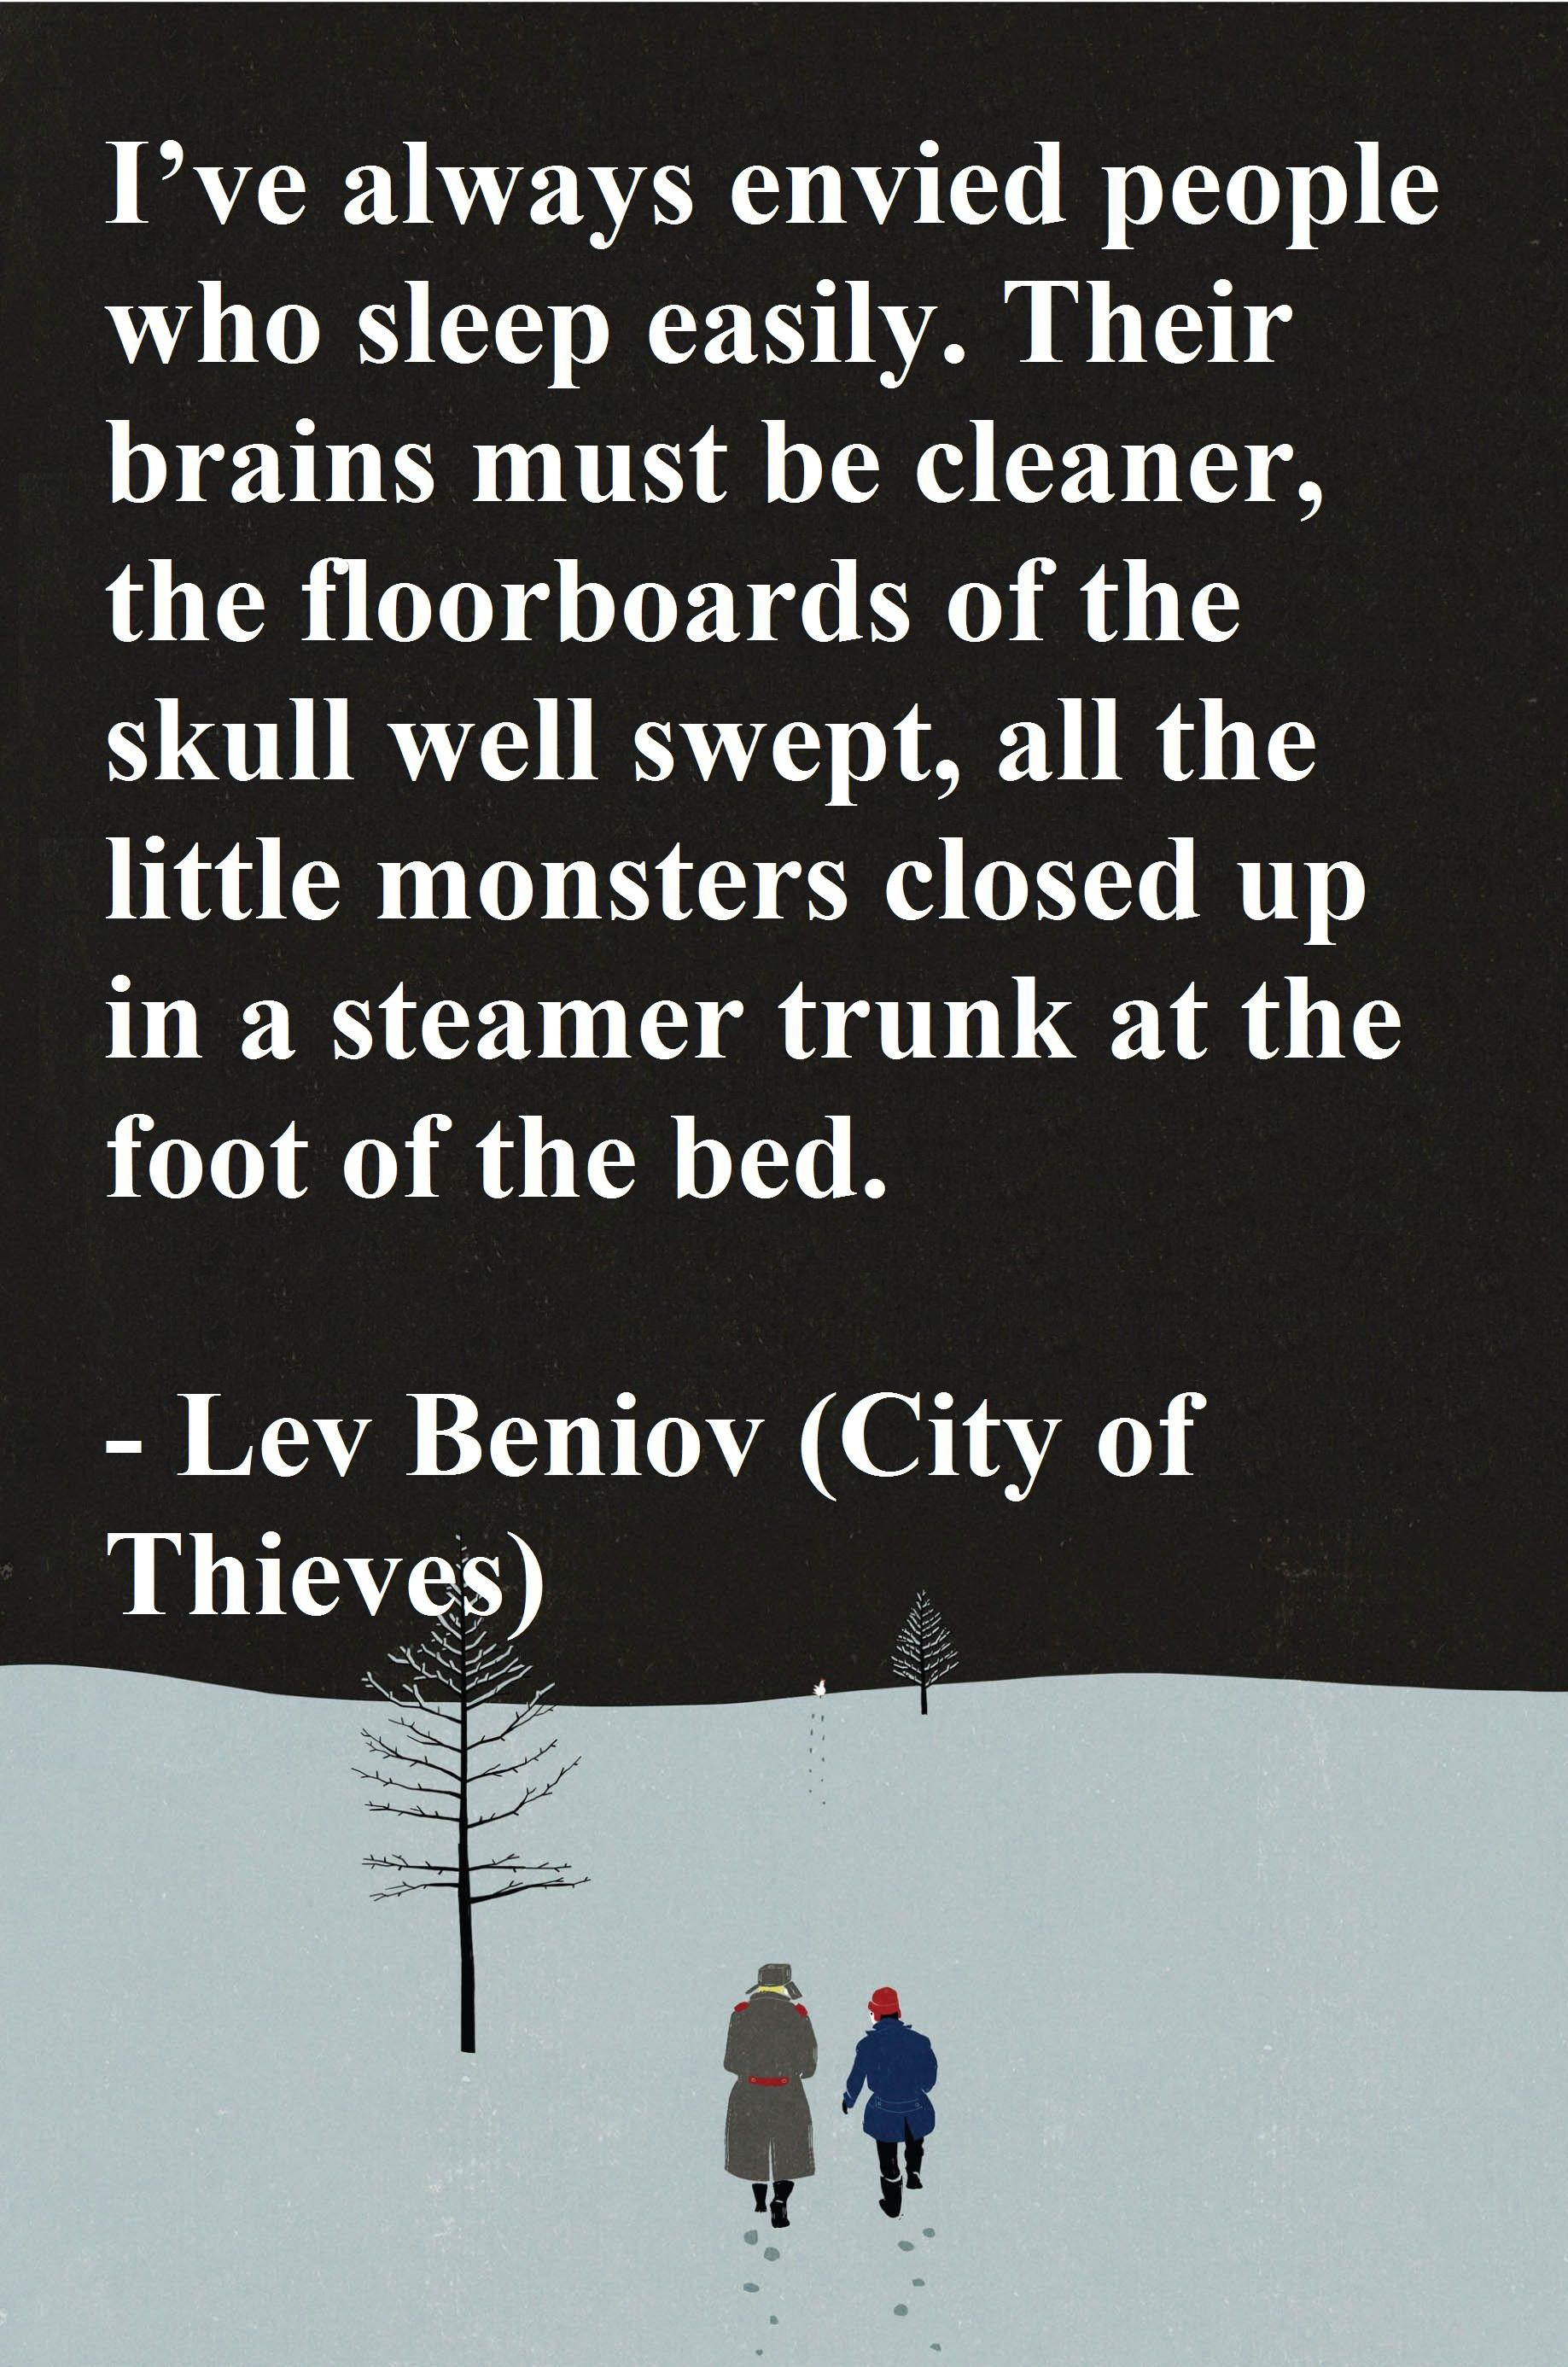 I've always envied people who sleep easily. – Lev Beniov in City of Thieves [1837 x 2773]